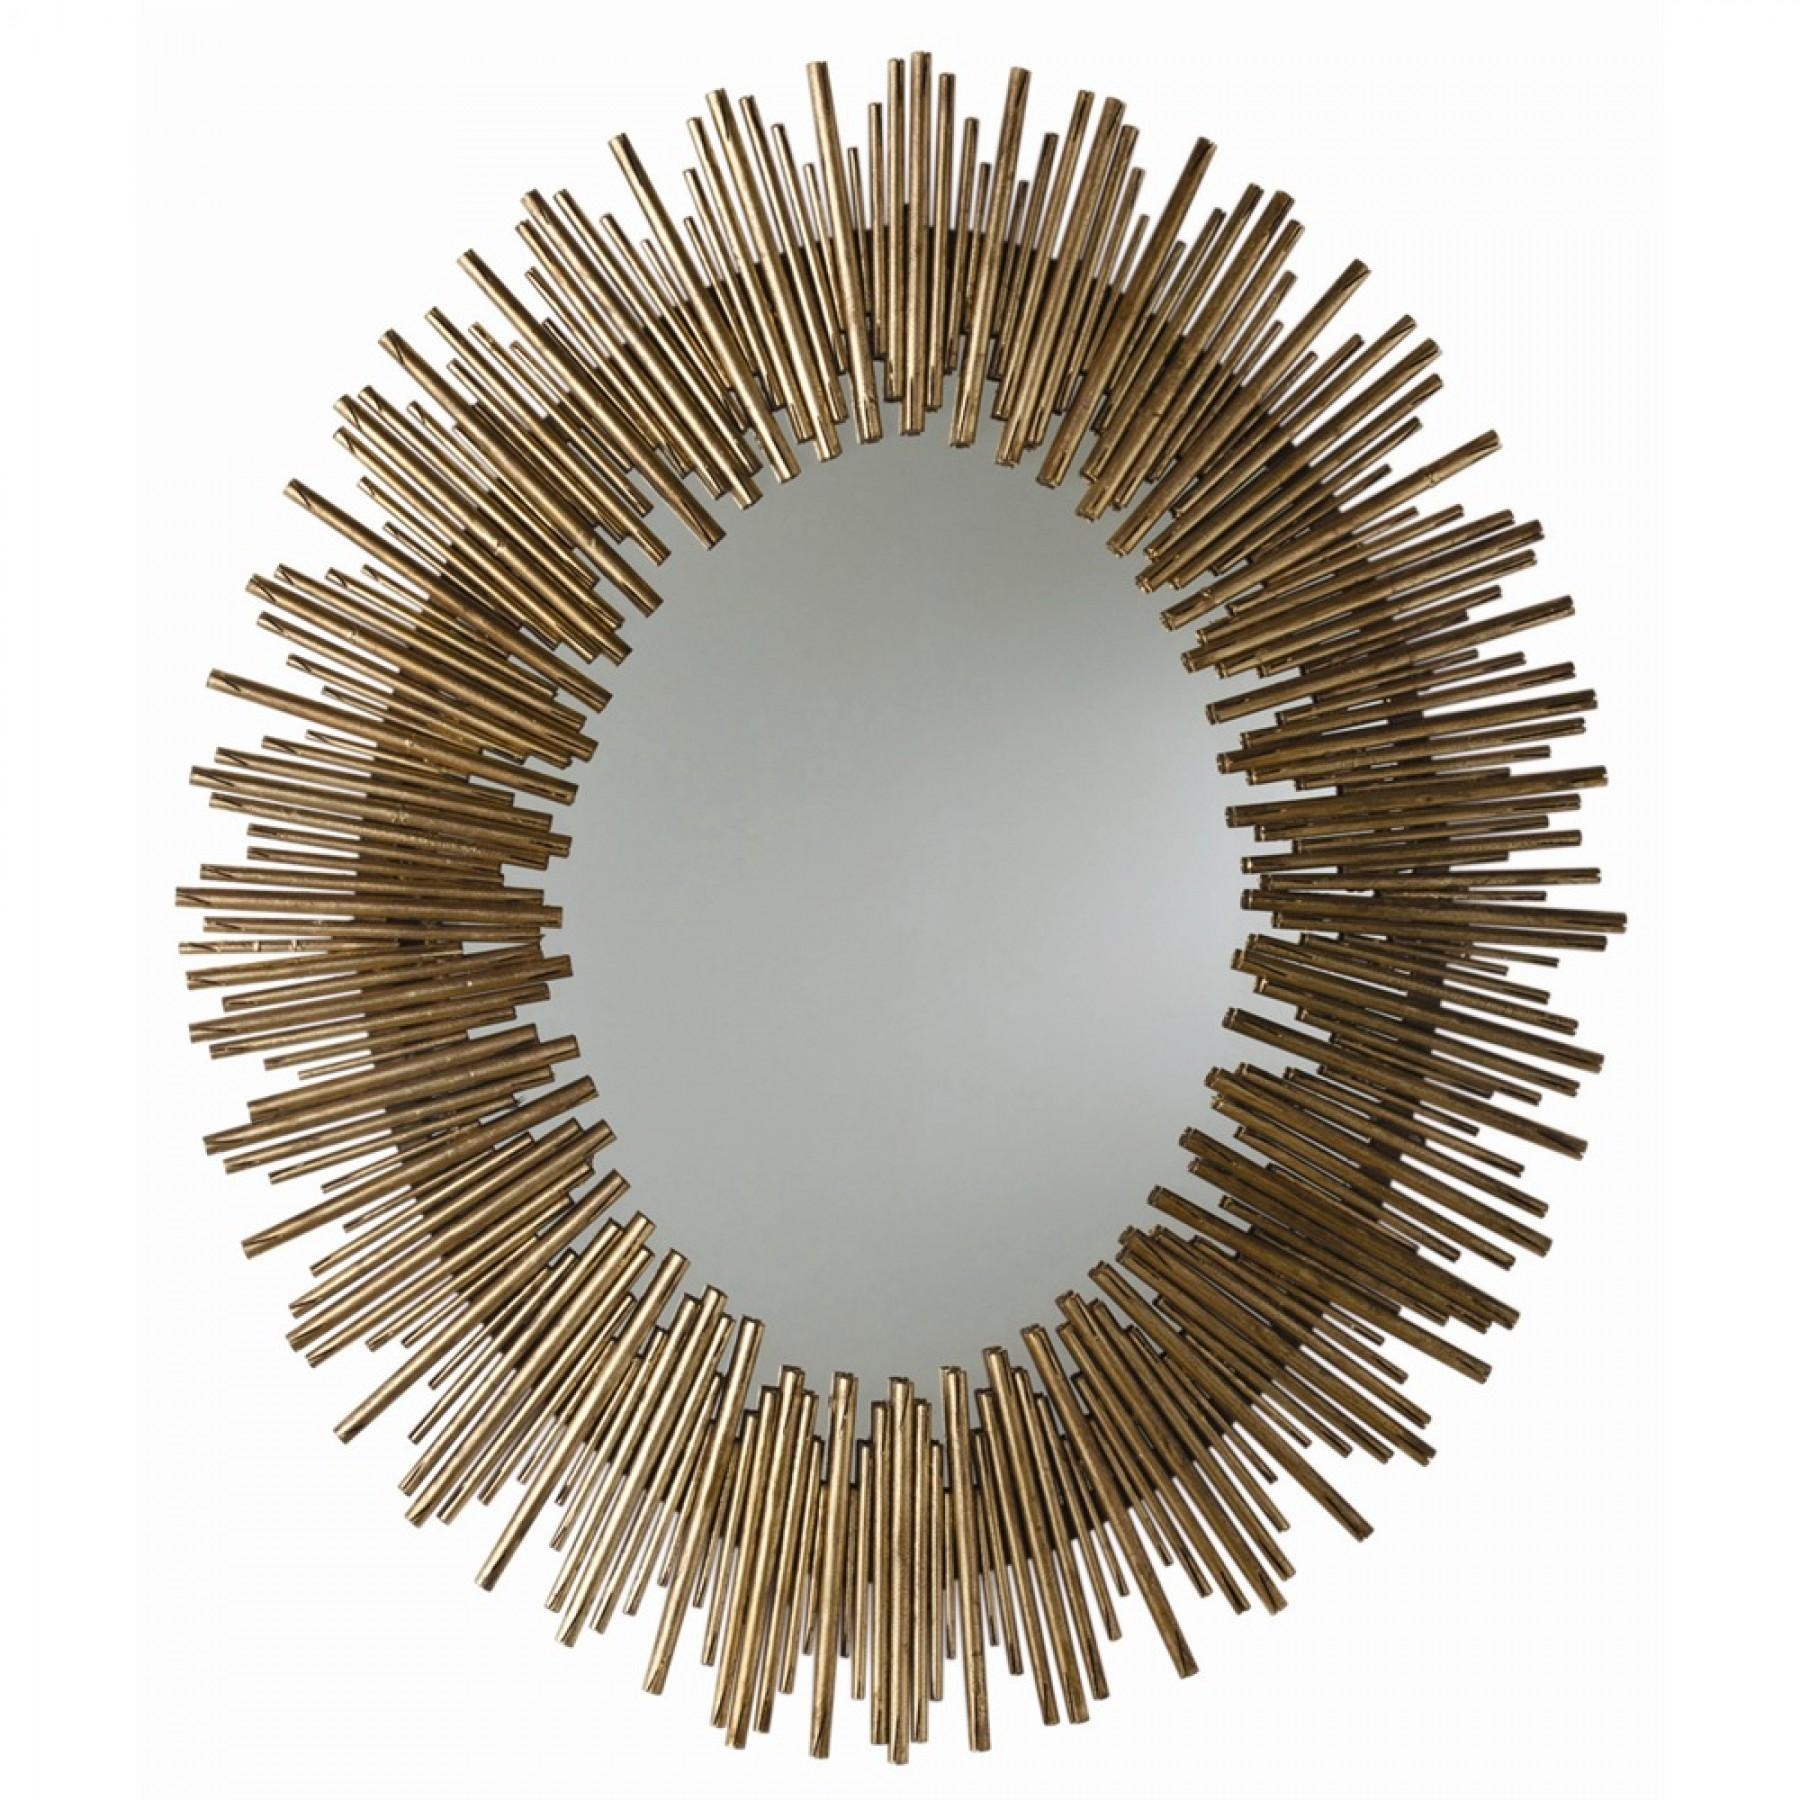 Large Oval Mirror Intended For Large Oval Mirror (Image 12 of 20)